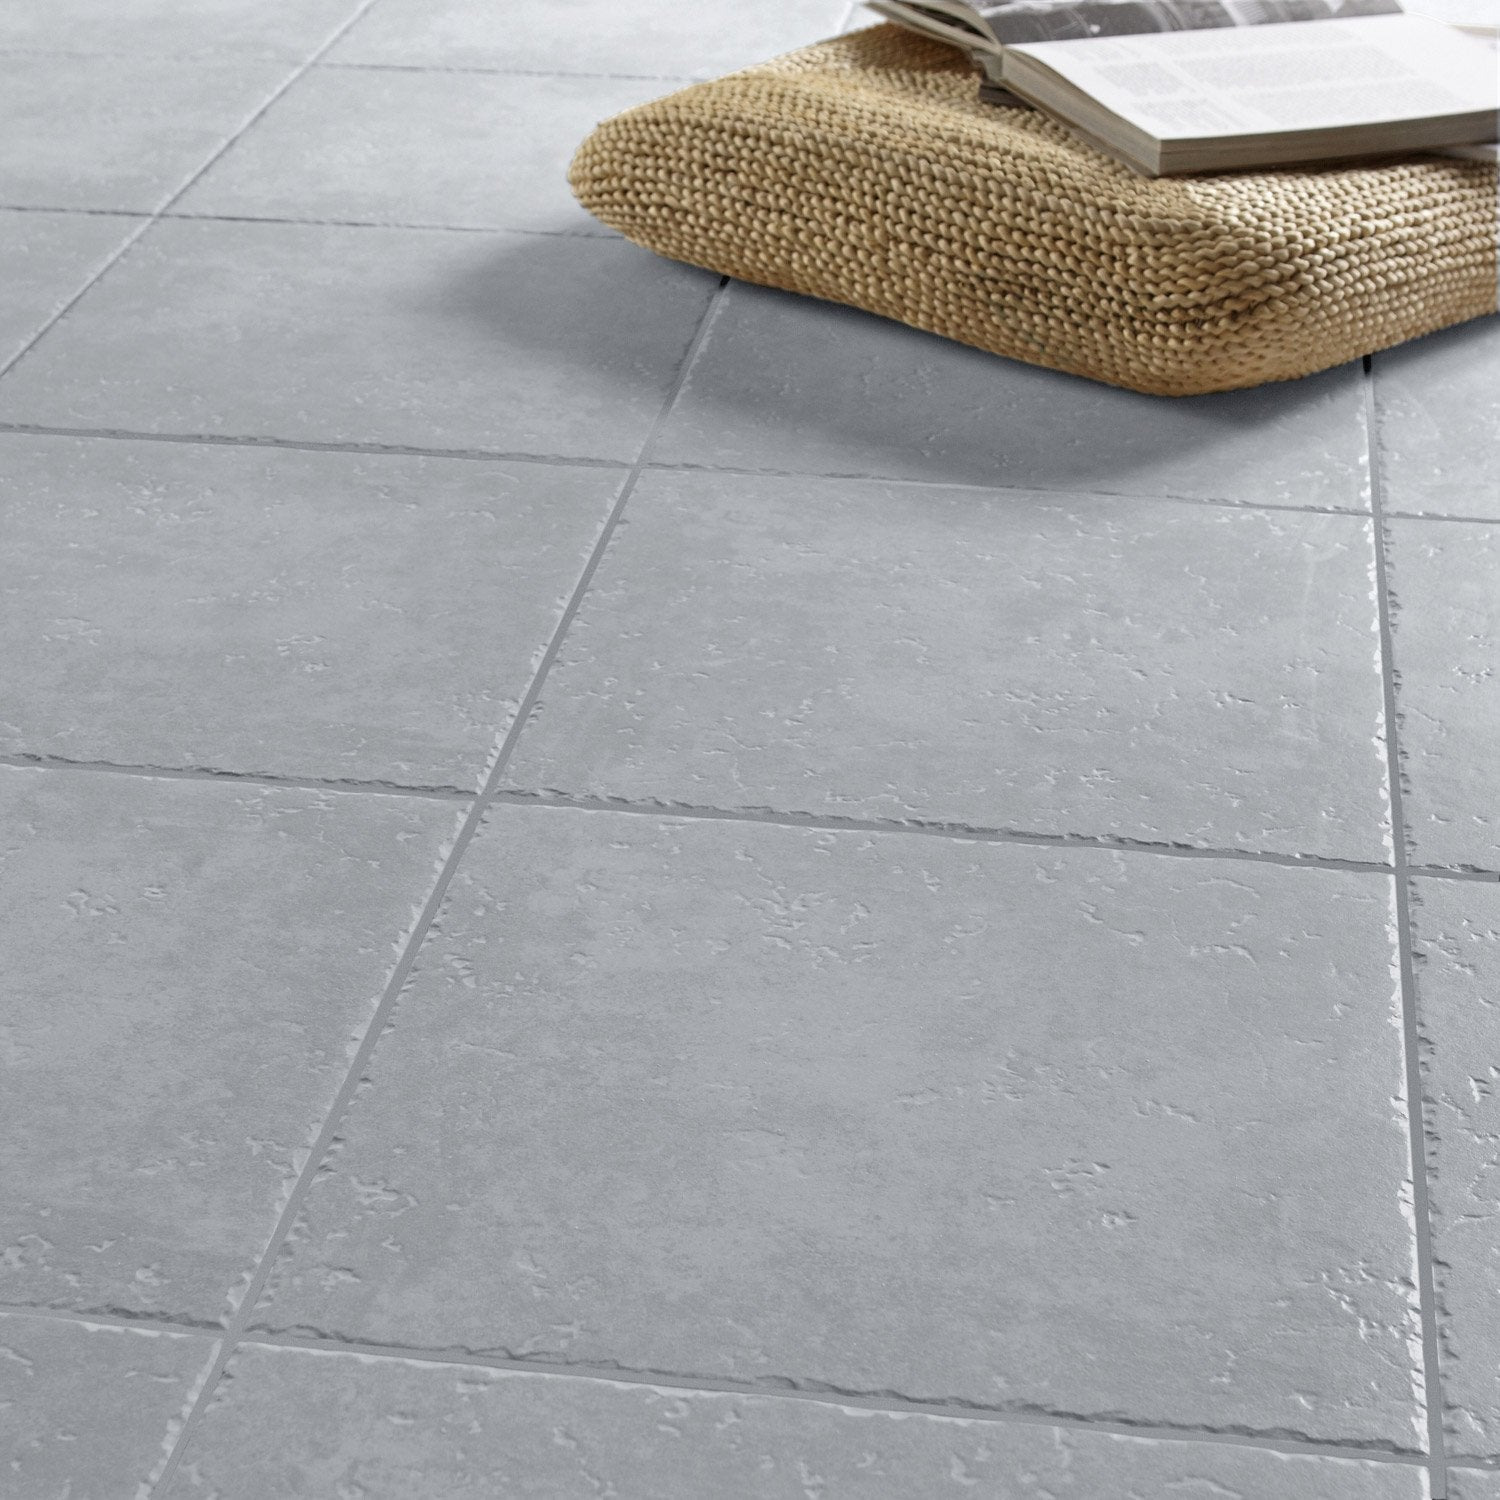 Carrelage sol gris effet pierre michigan x cm leroy merlin - Carrelage garage leroy merlin ...